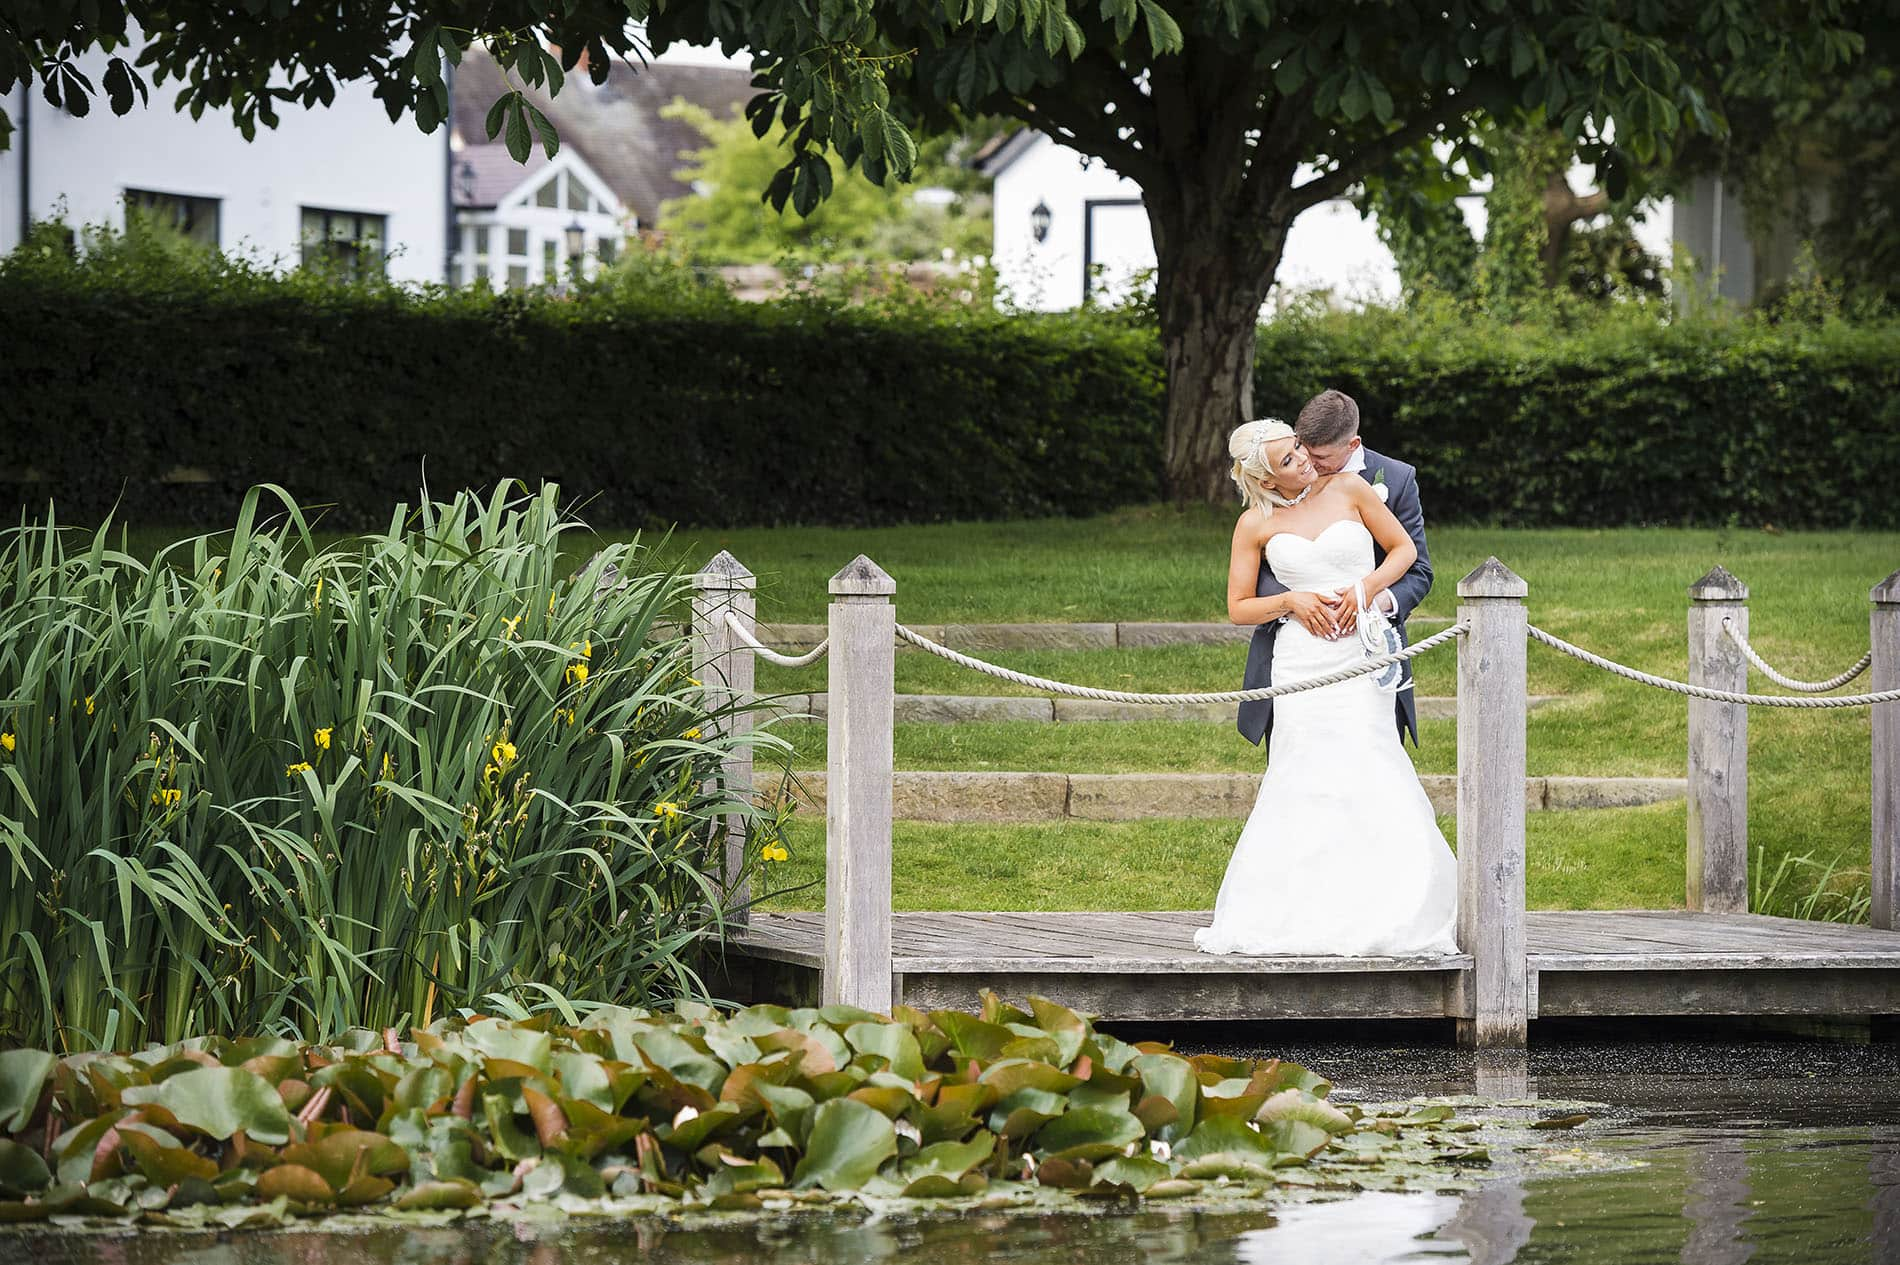 Wedding photographer West Midlands | Philip James Photography